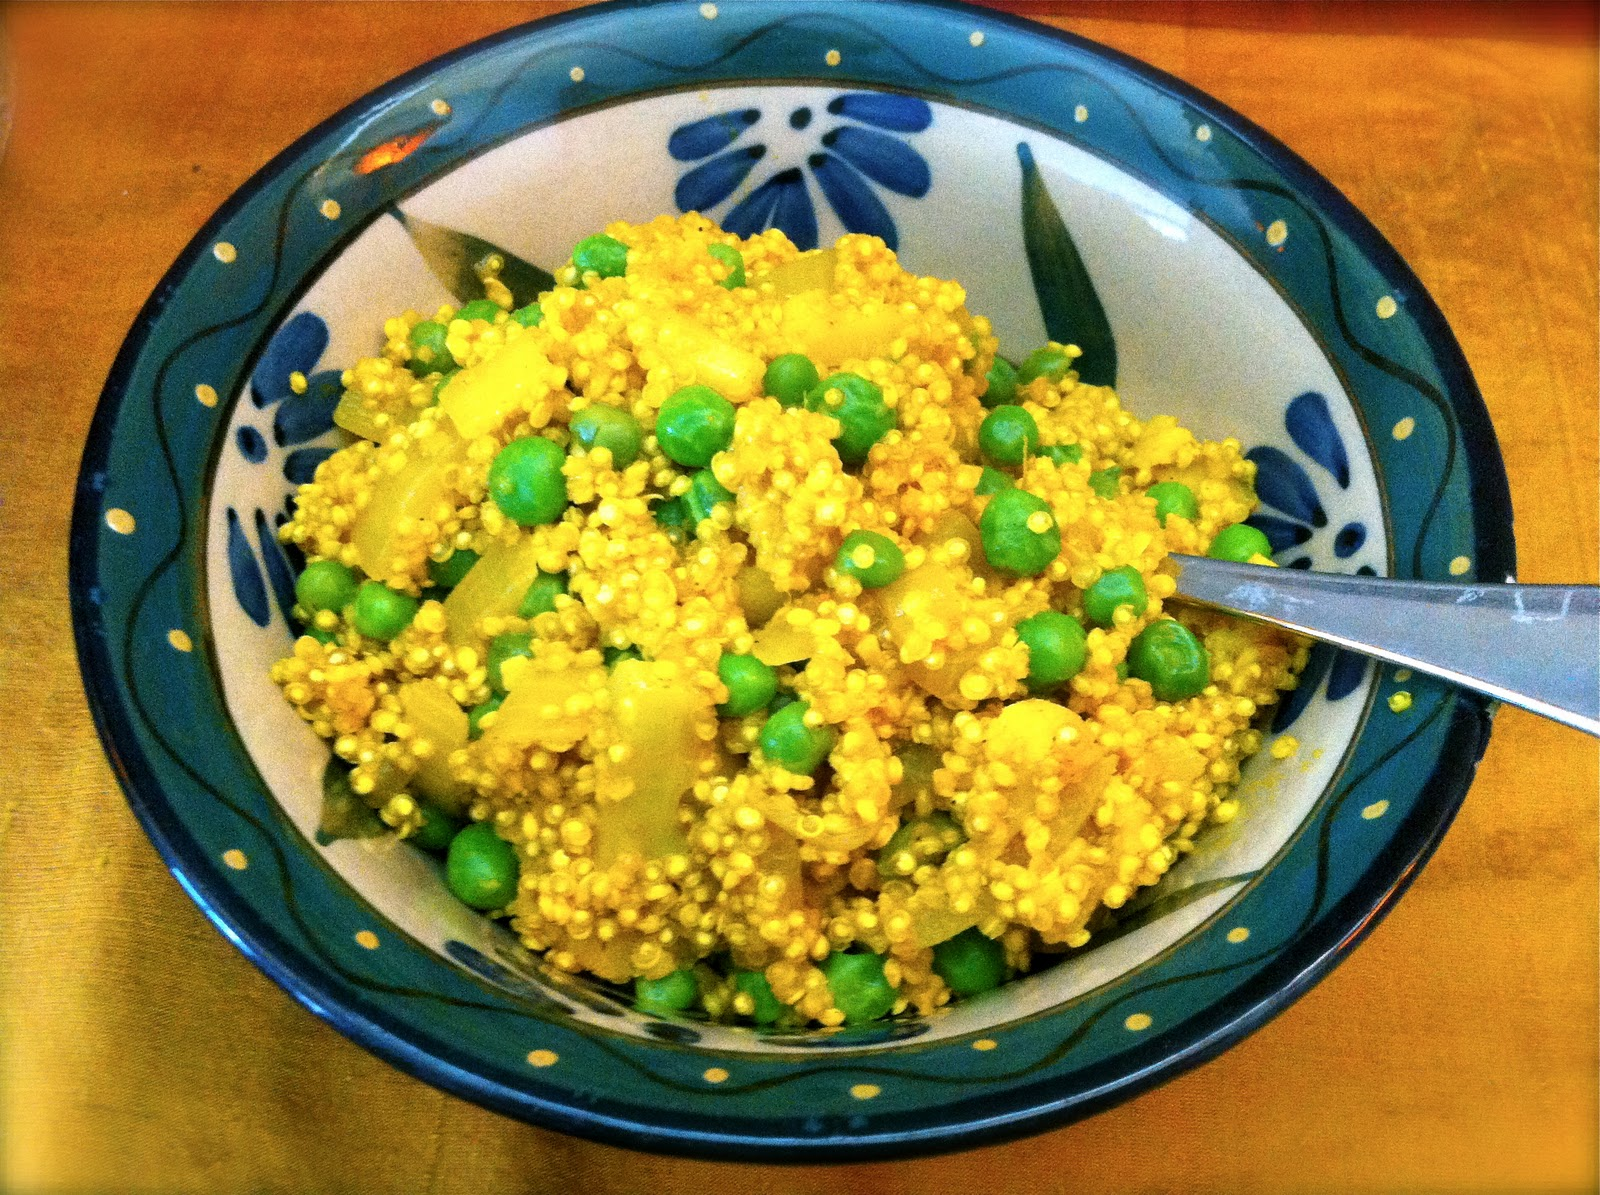 basic quinoa recipe 1 cup quinoa 1 1 2 tbsp